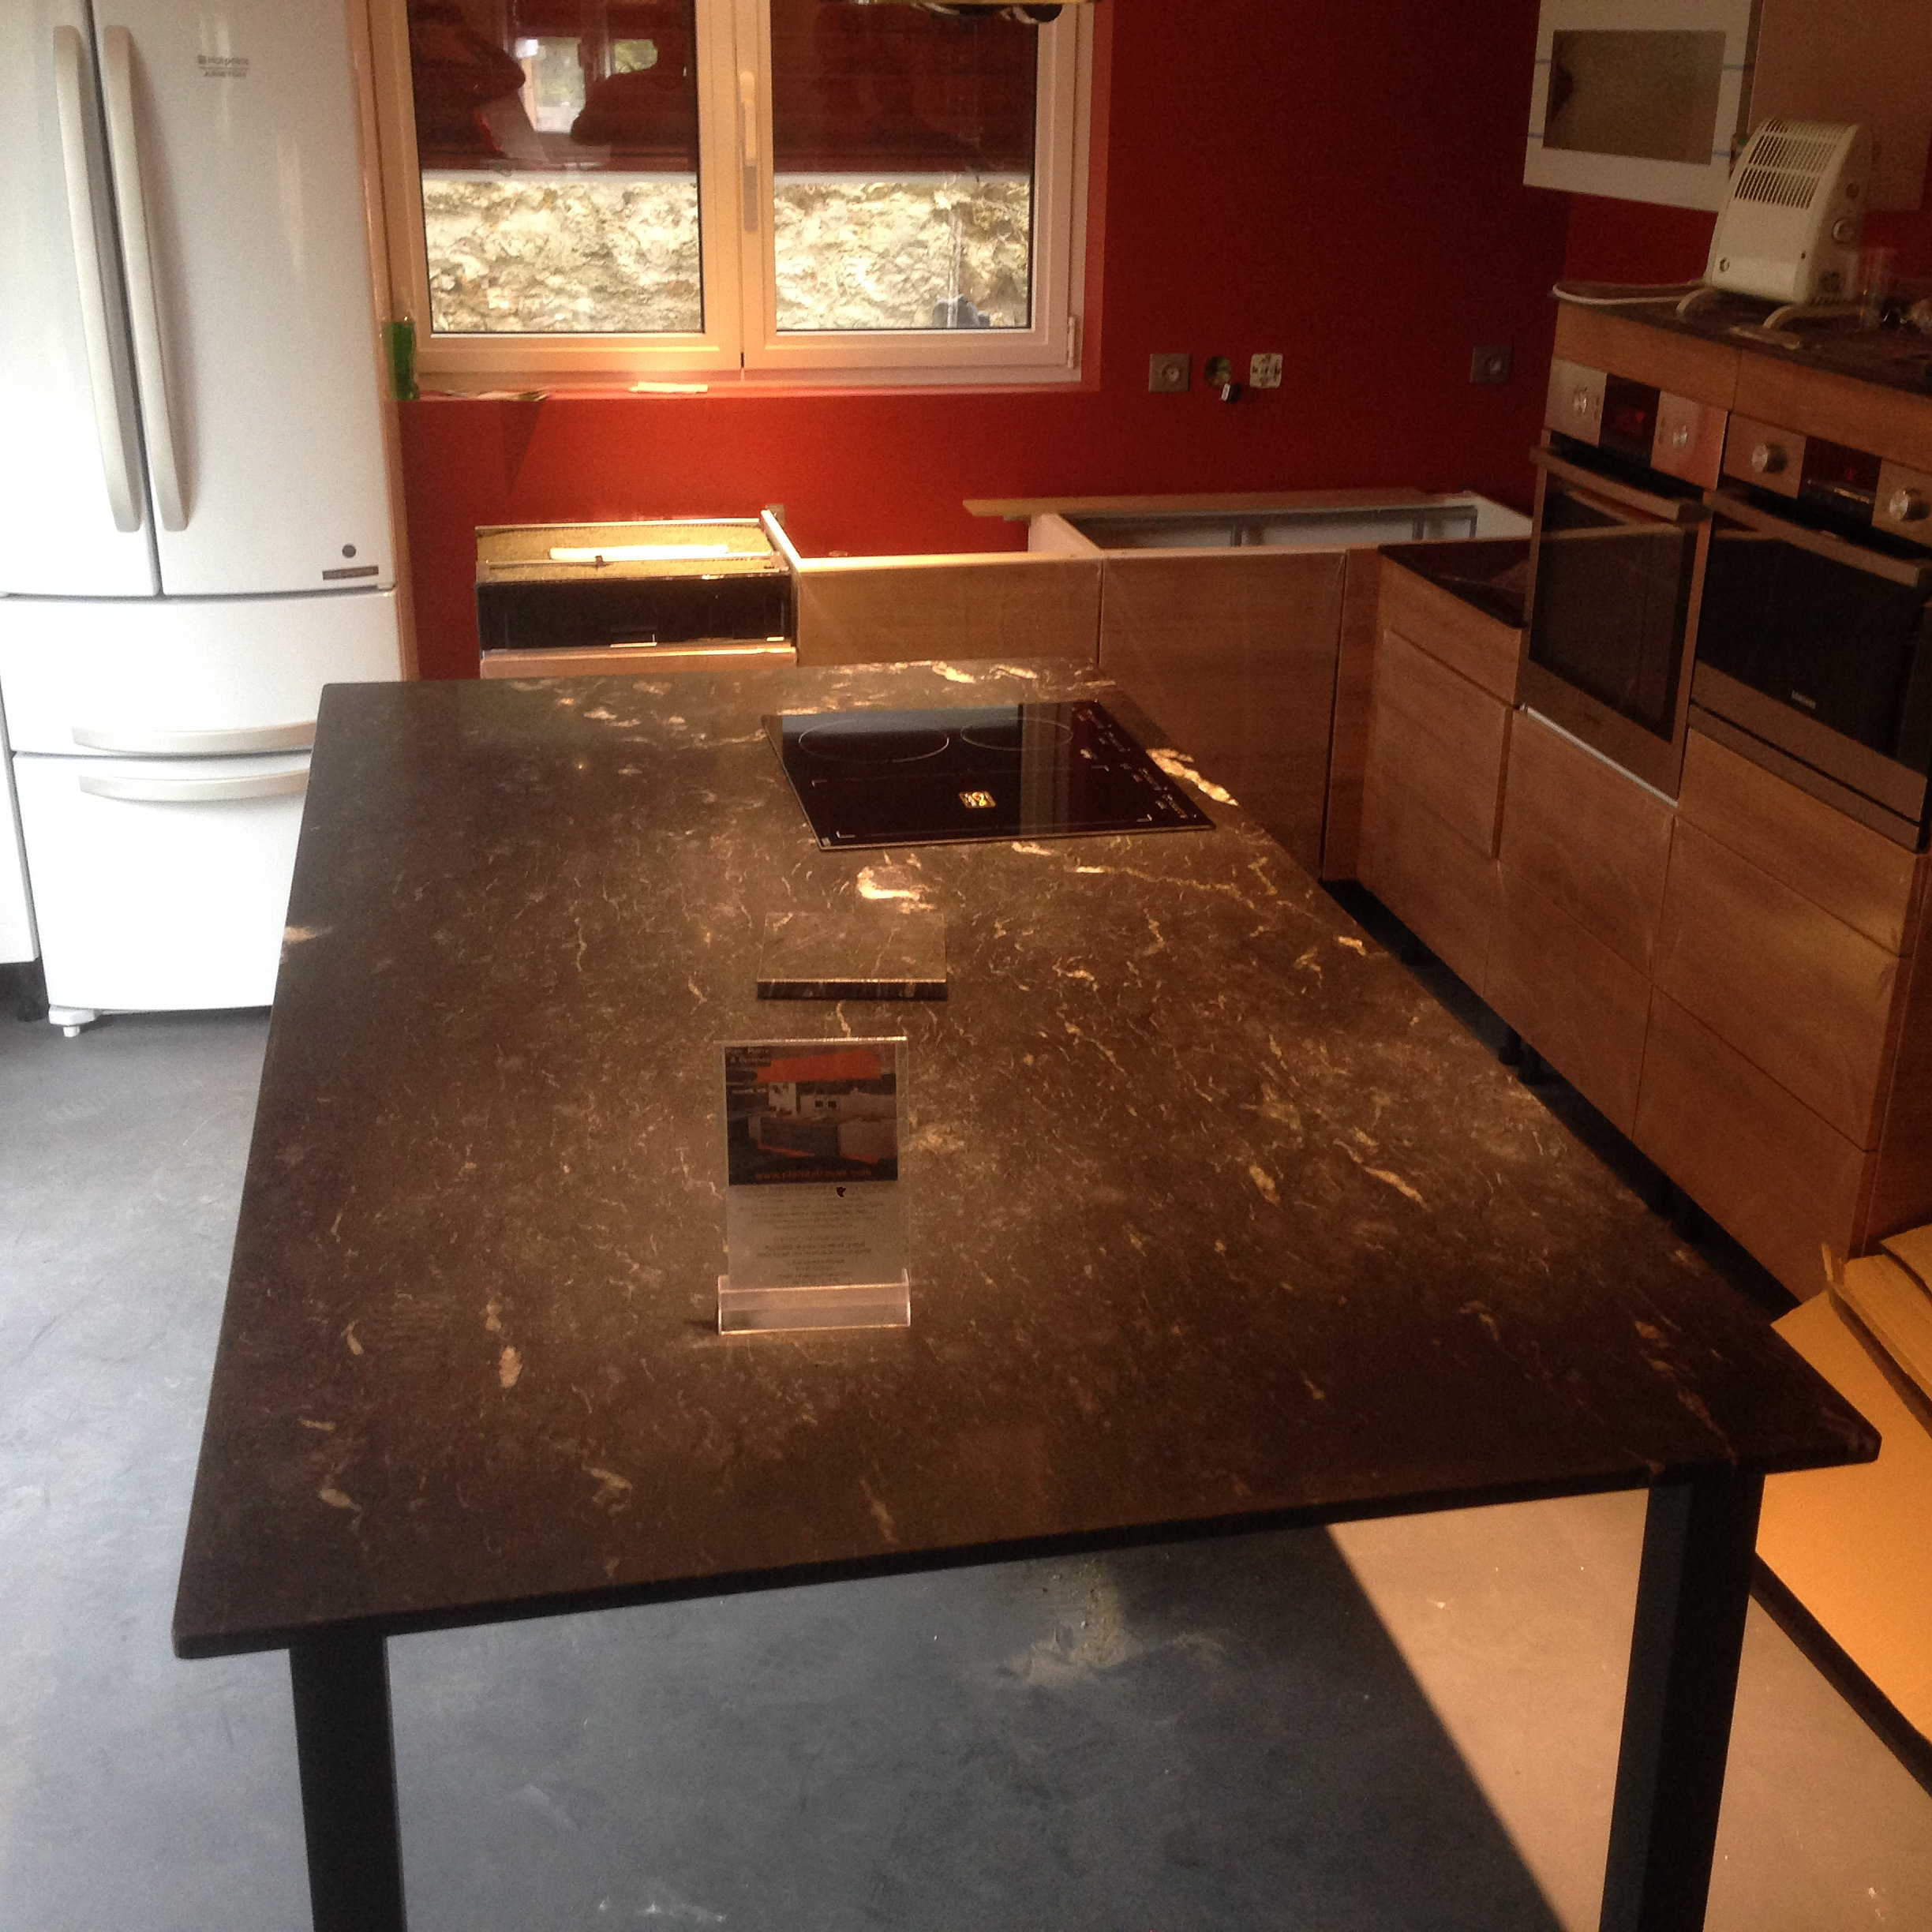 Plan de travail granit quartz table en mabre paris - Table de cuisine sur mesure ...